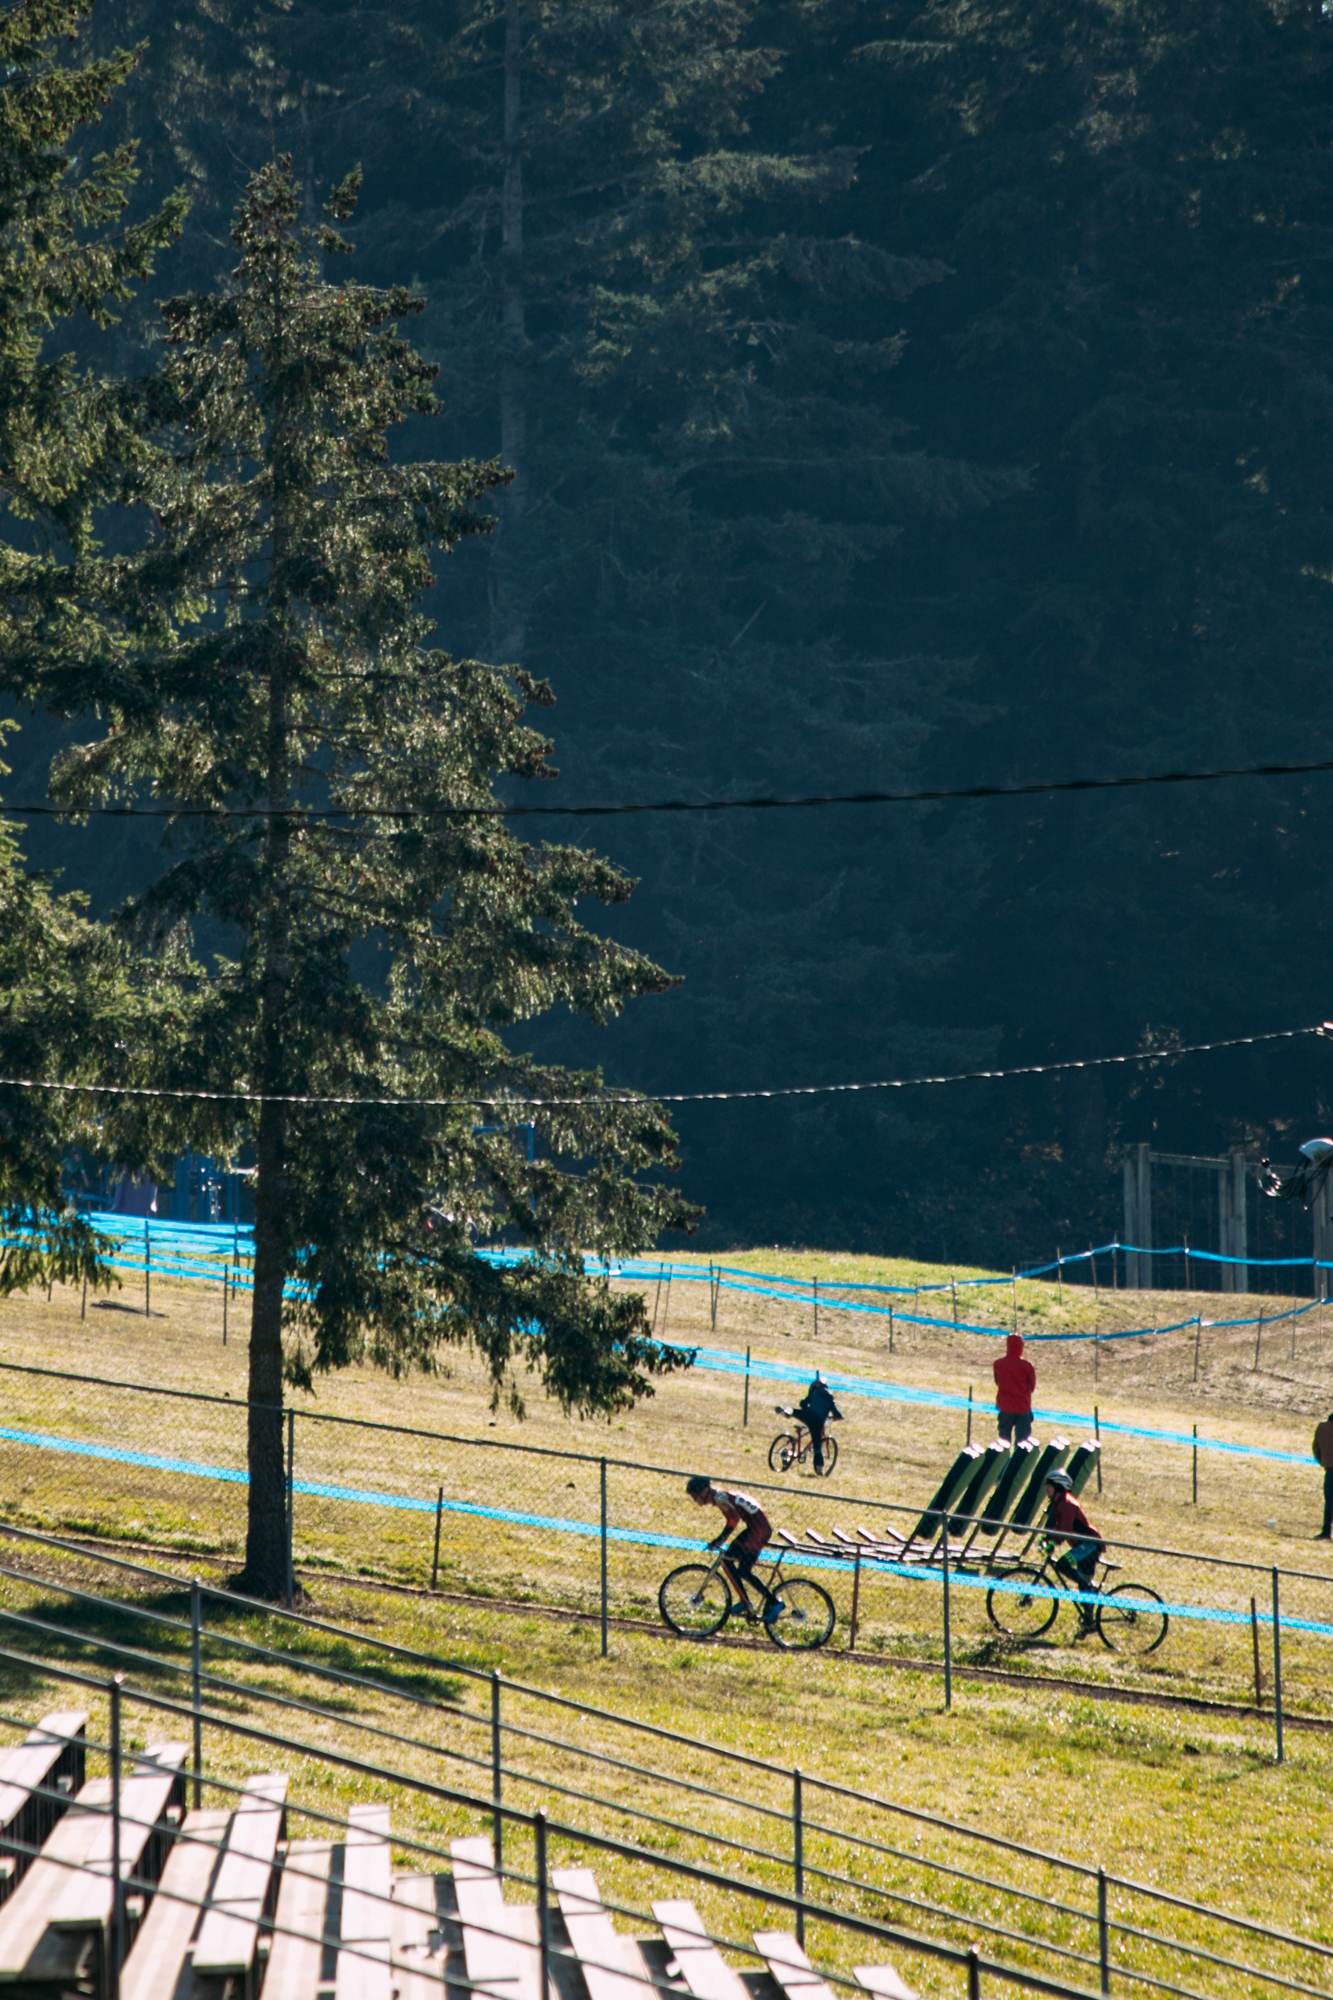 Cyclocross18_CCCX_RainierHS-11-mettlecycling.jpg